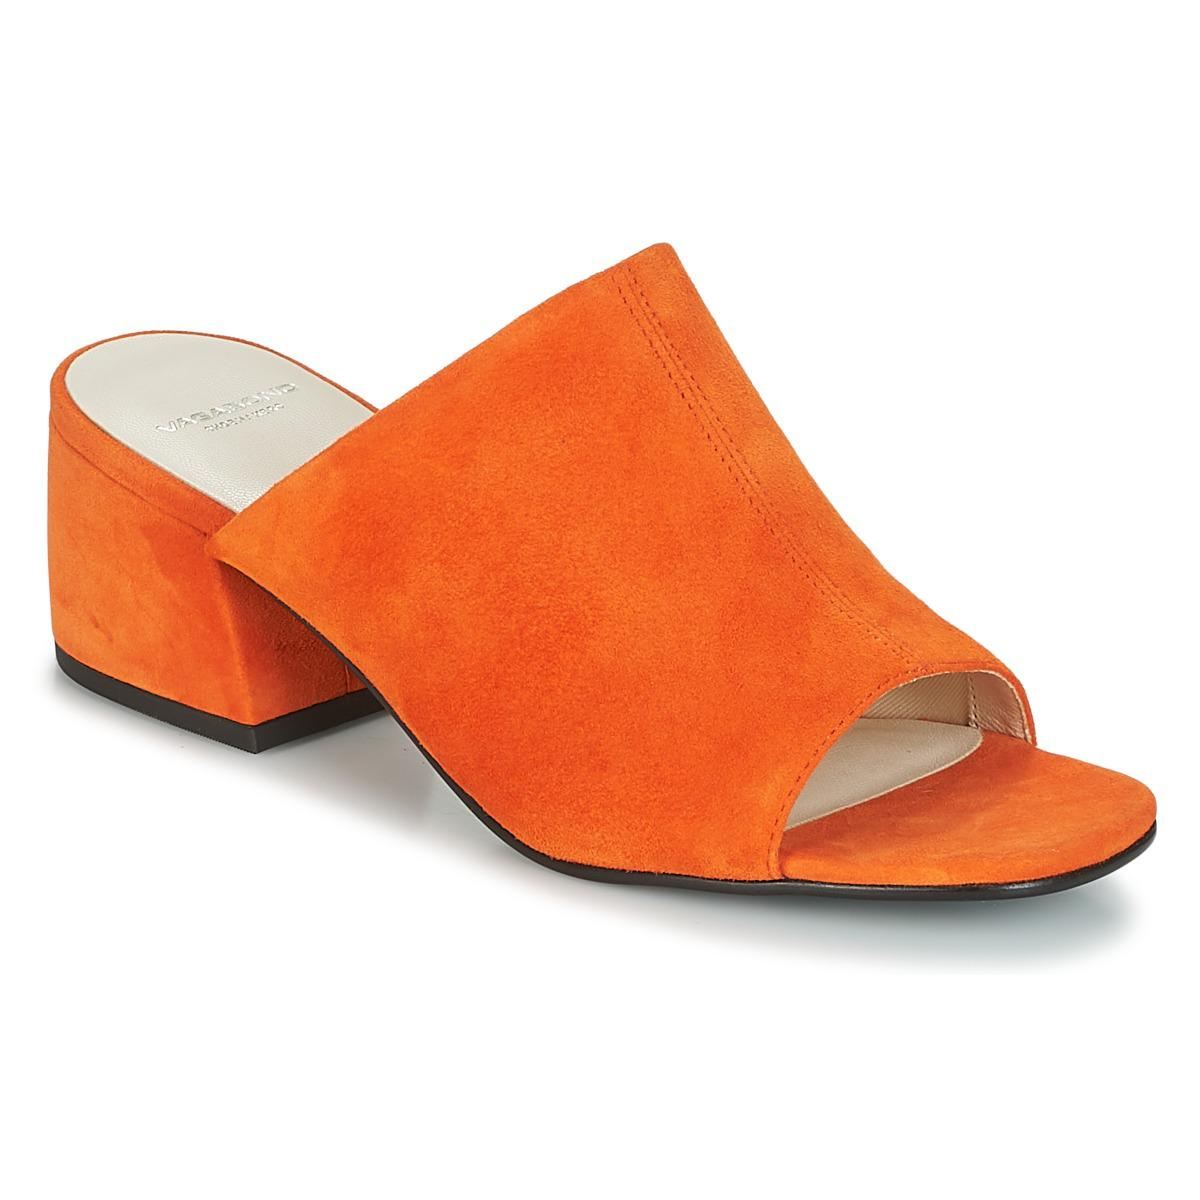 Vagabond Lyst Mules Orange In Saide Shoes Casual LzUVGSMqp